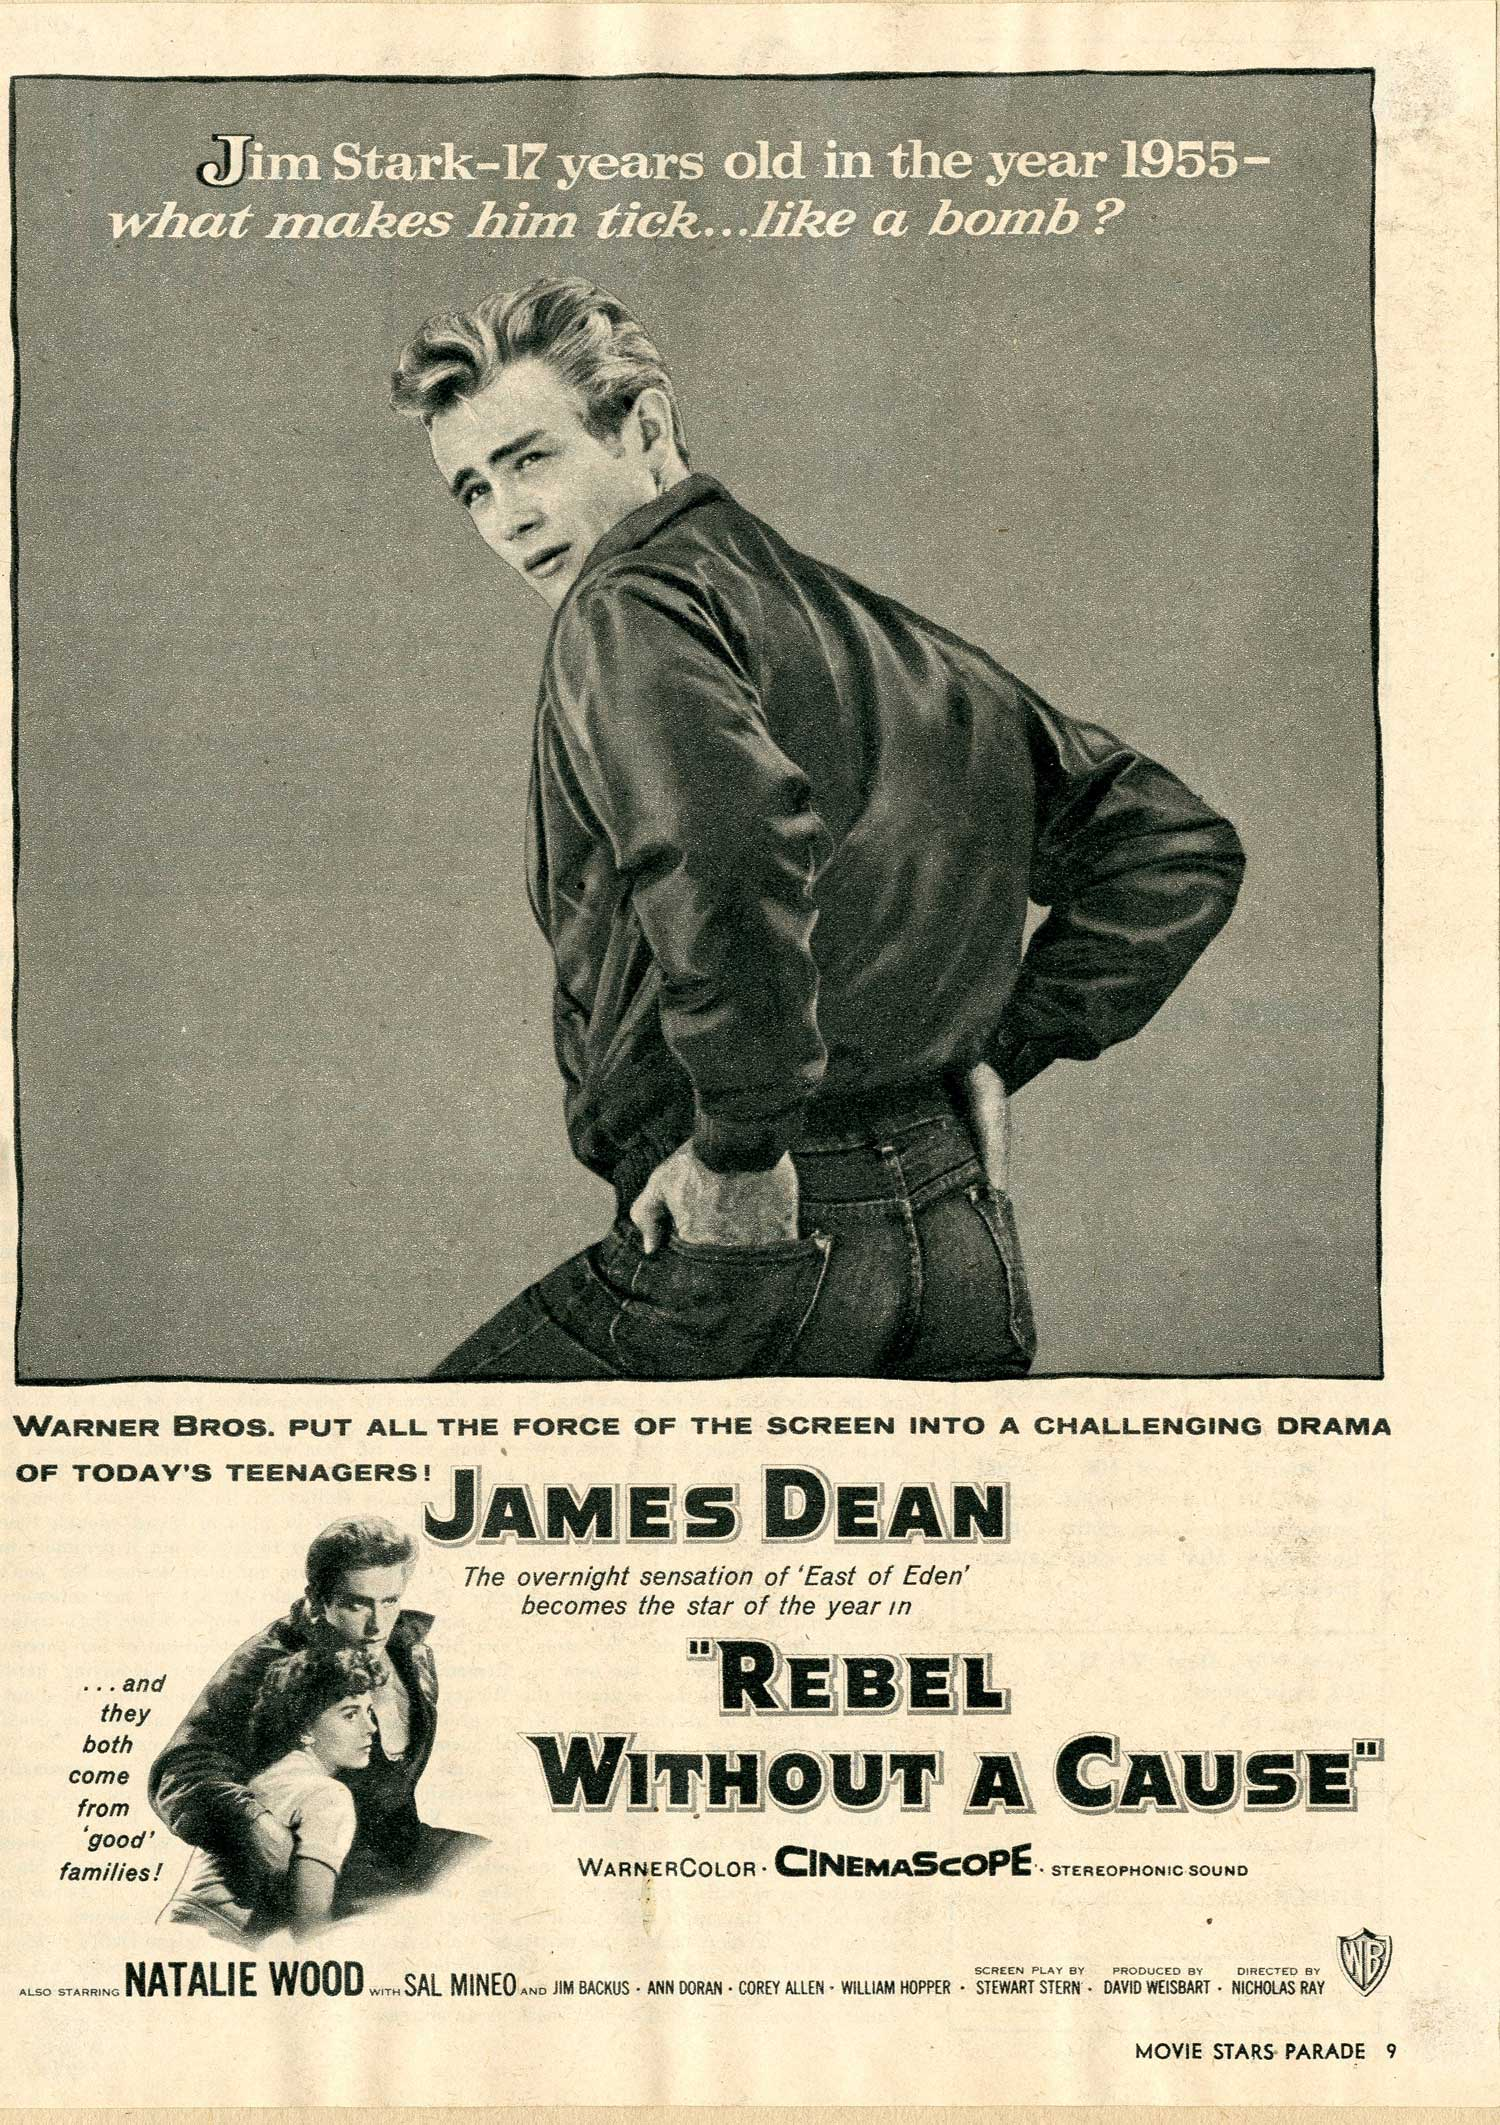 Newspaper and magazine ads for Rebel without a Cause featured a different design from the familiar theatrical poster art.